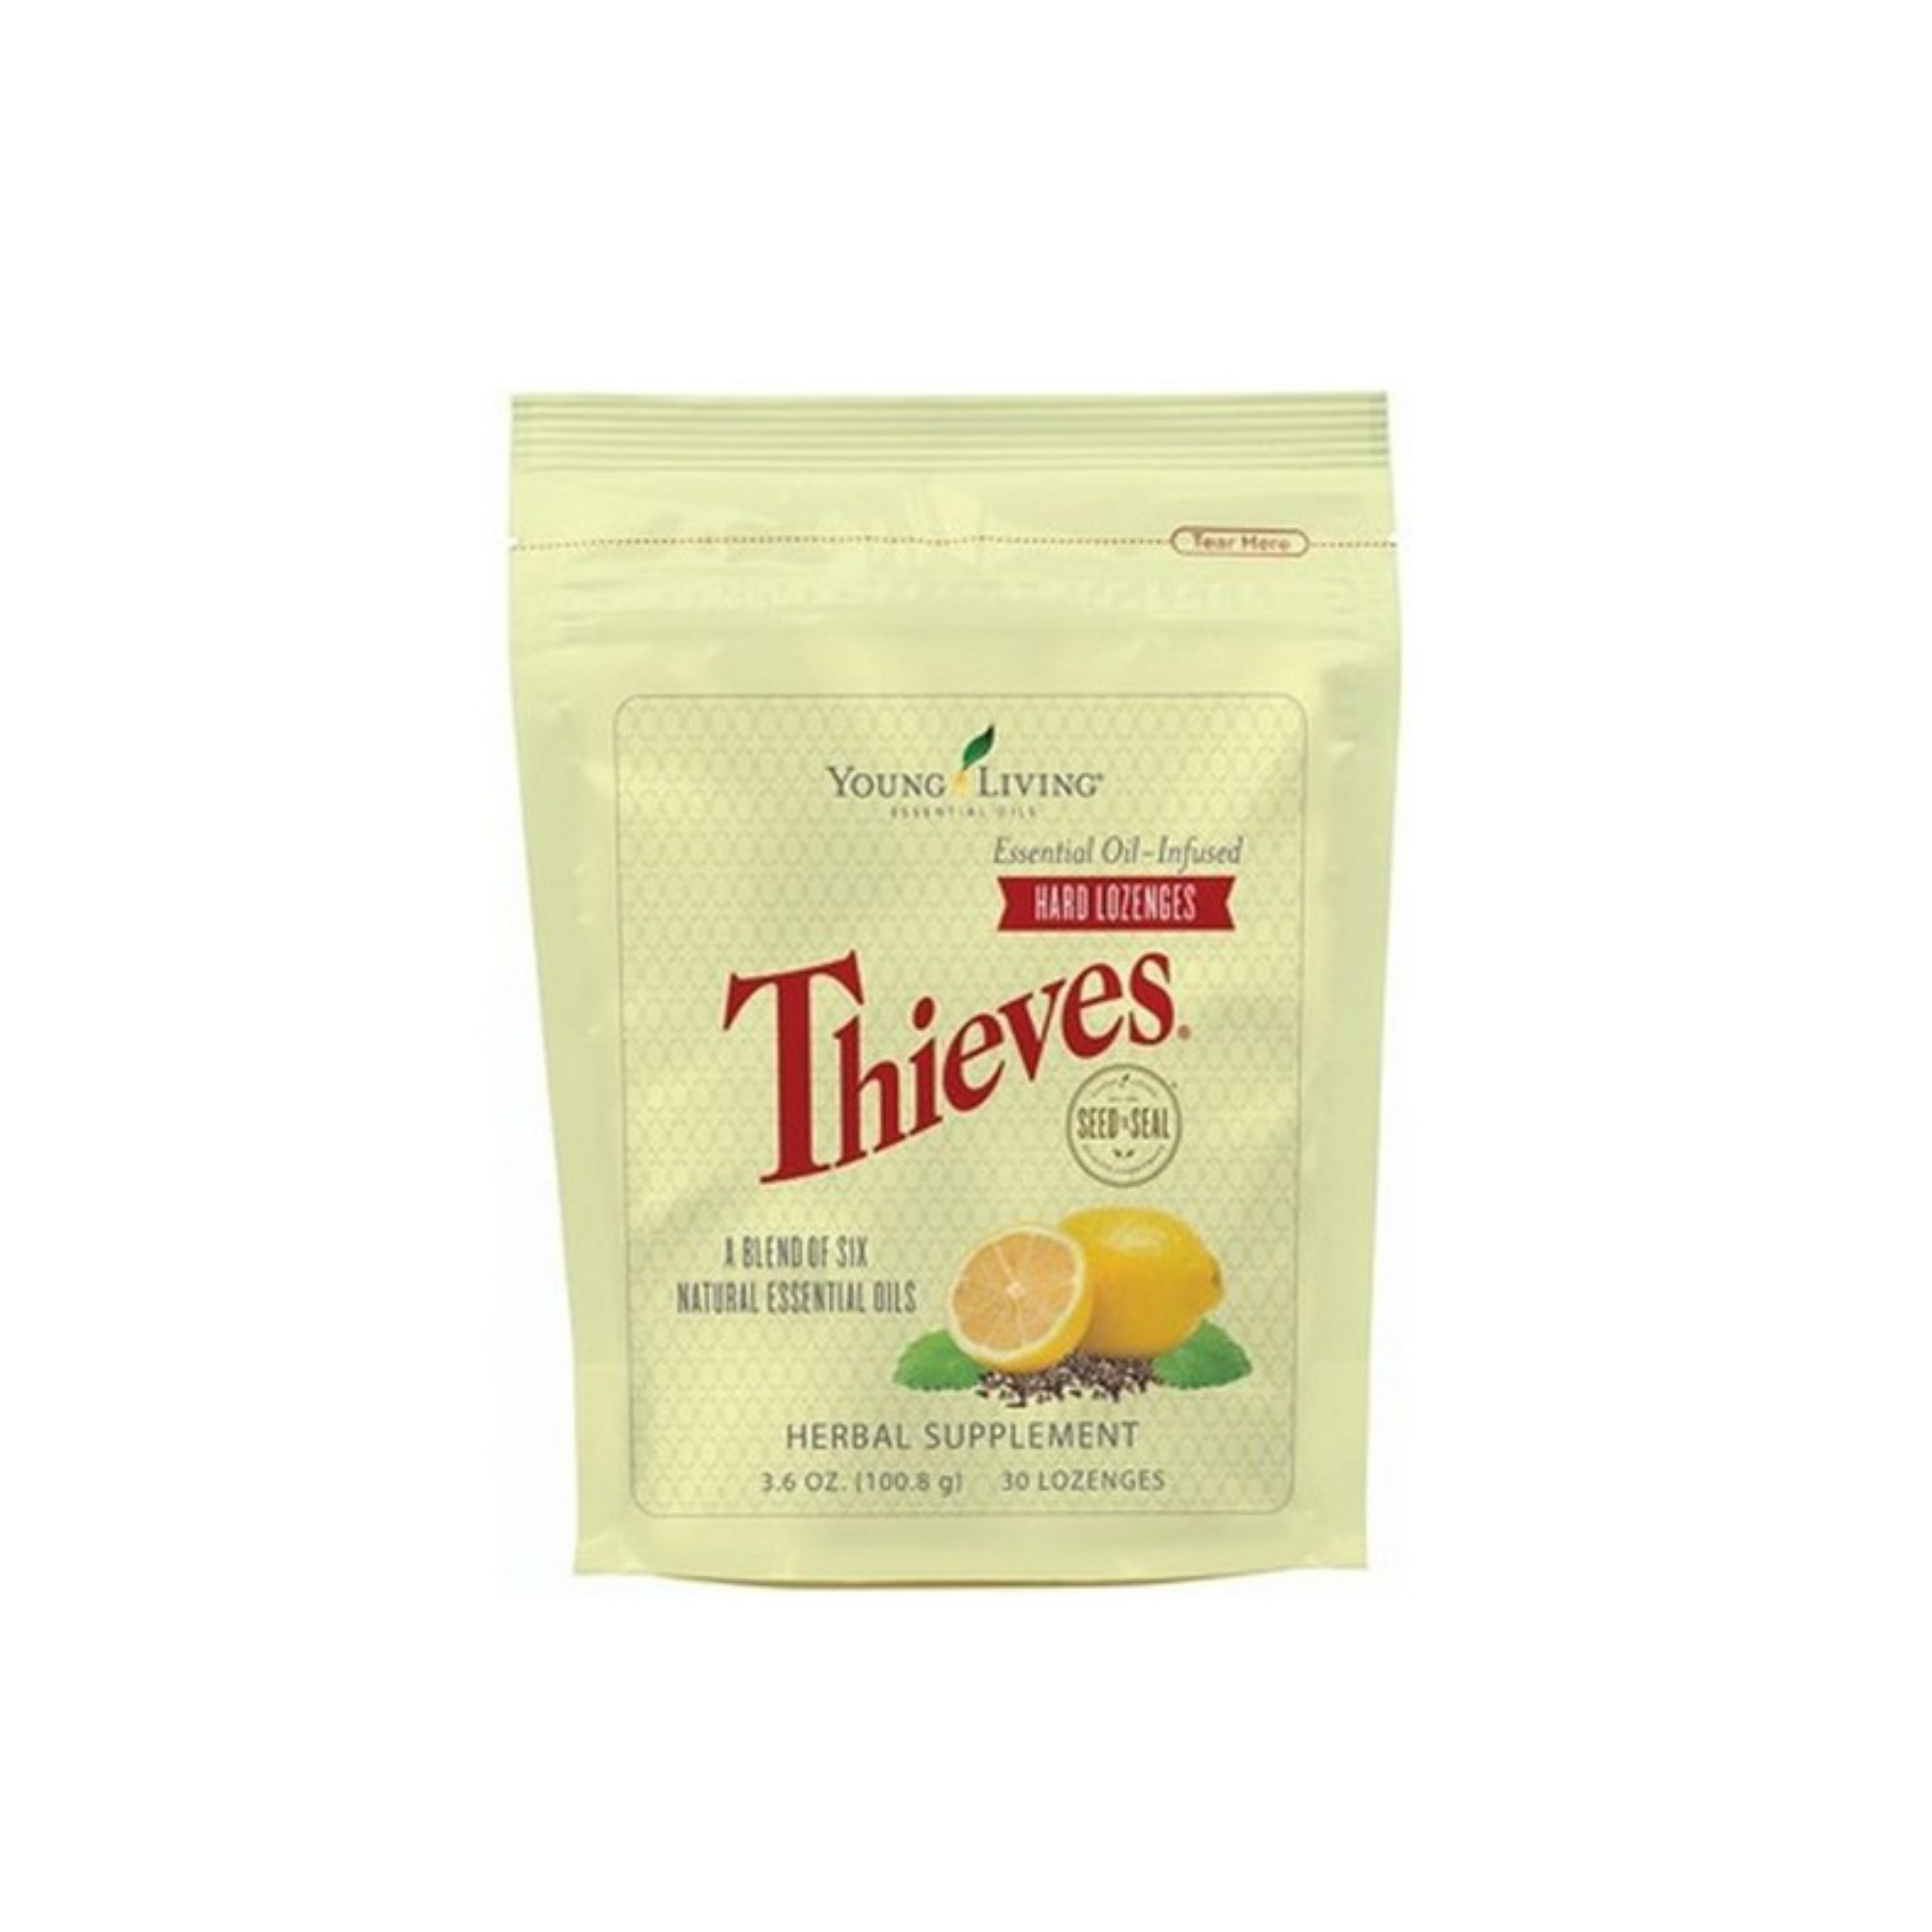 THIEVES HARD LOZENGES    Unlike many other lozenges, Thieves Hard Lozenges use pure essential oils and natural ingredients instead of sugar or artificial flavoring for a great, refreshing taste. These lozenges get an extra flavor boost from Peppermint and Lemon essential oils. Whether you use them for targeted support or overall wellness, Thieves Hard Lozenges are great for immune support.   Click here   to learn more about this product.